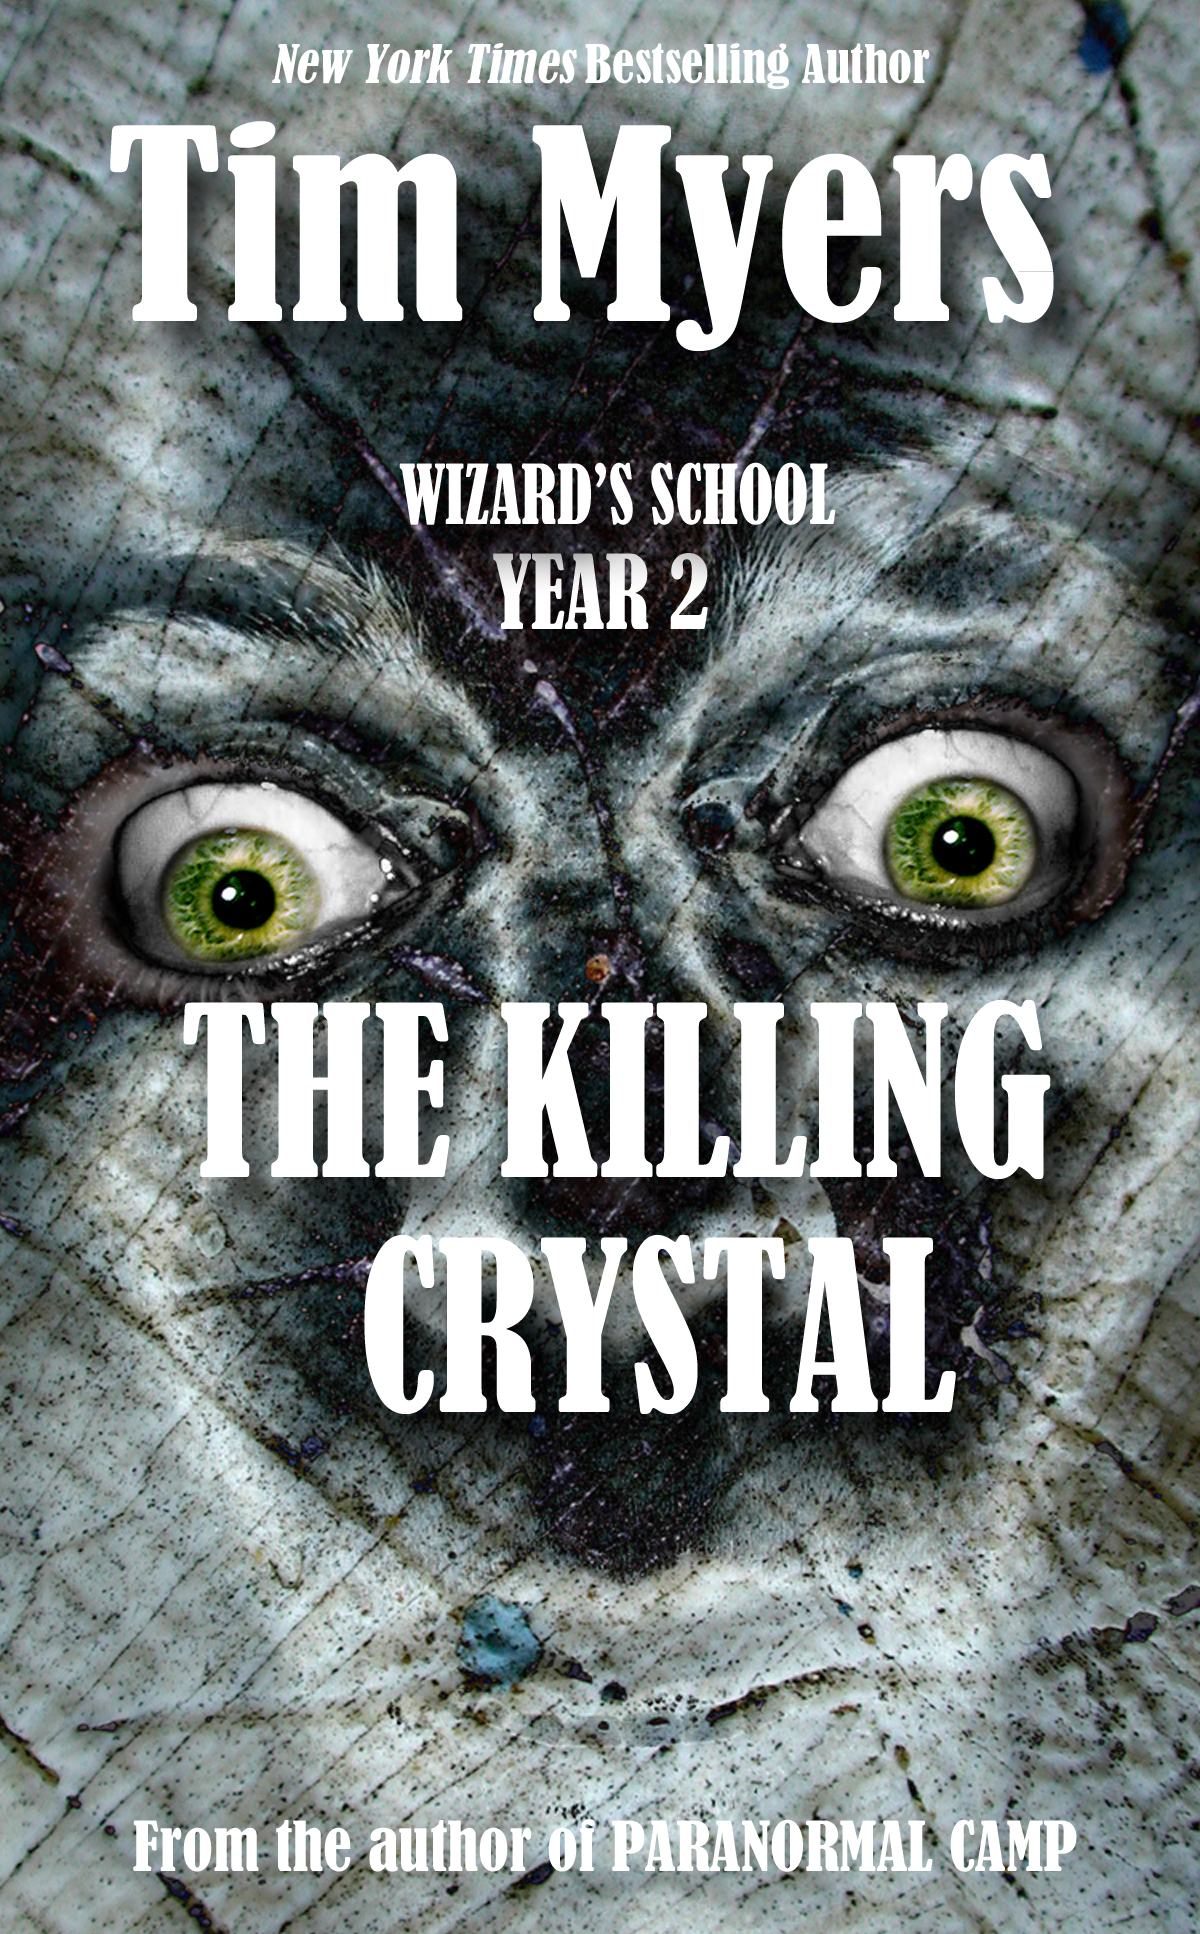 Wizard's School: Year 2, The Killing Crystal